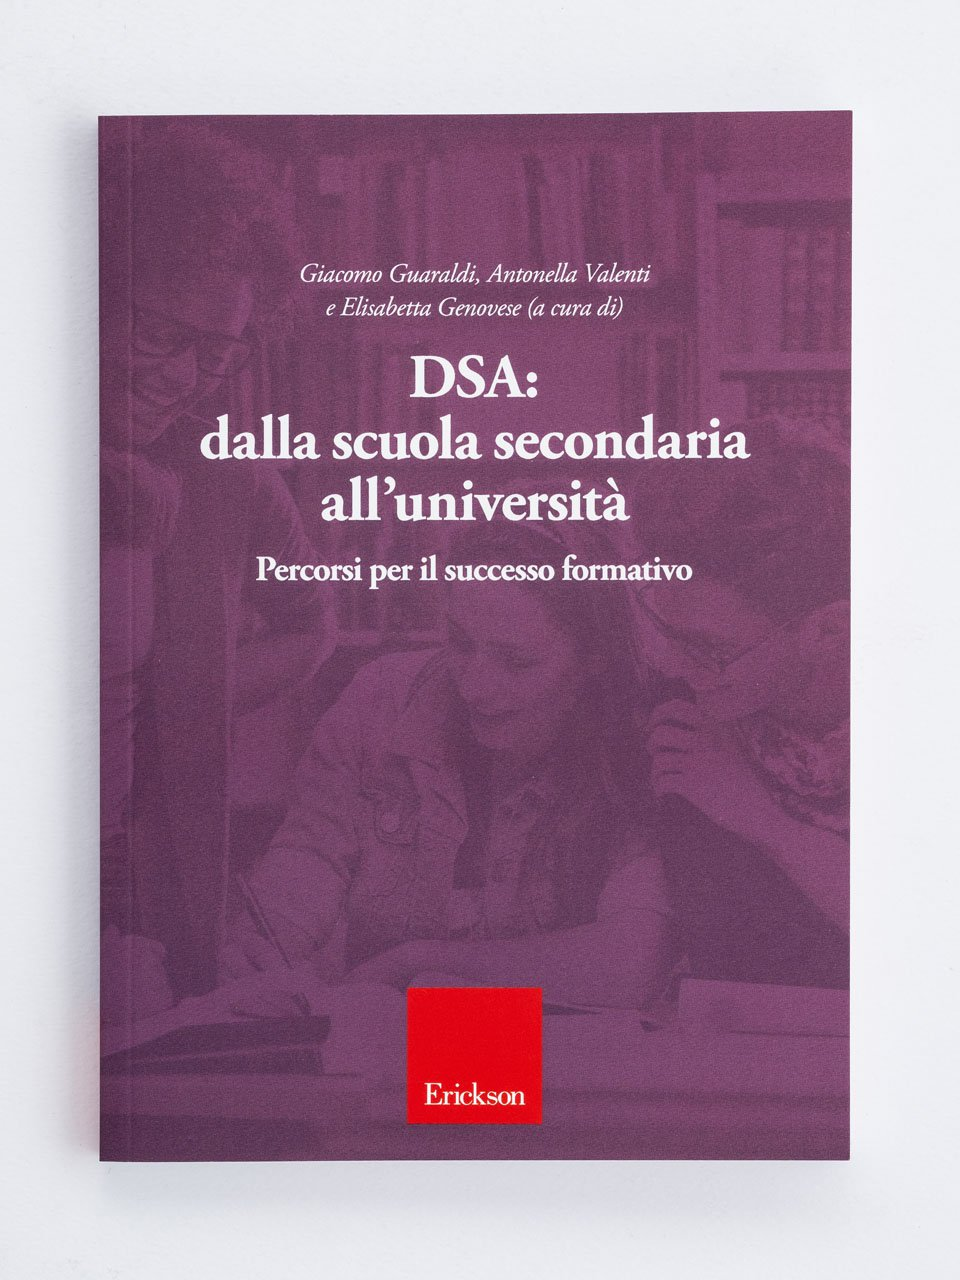 DSA: dalla scuola secondaria all'università - Lessico e ortografia - Volume 1 - Libri - App e software - Erickson